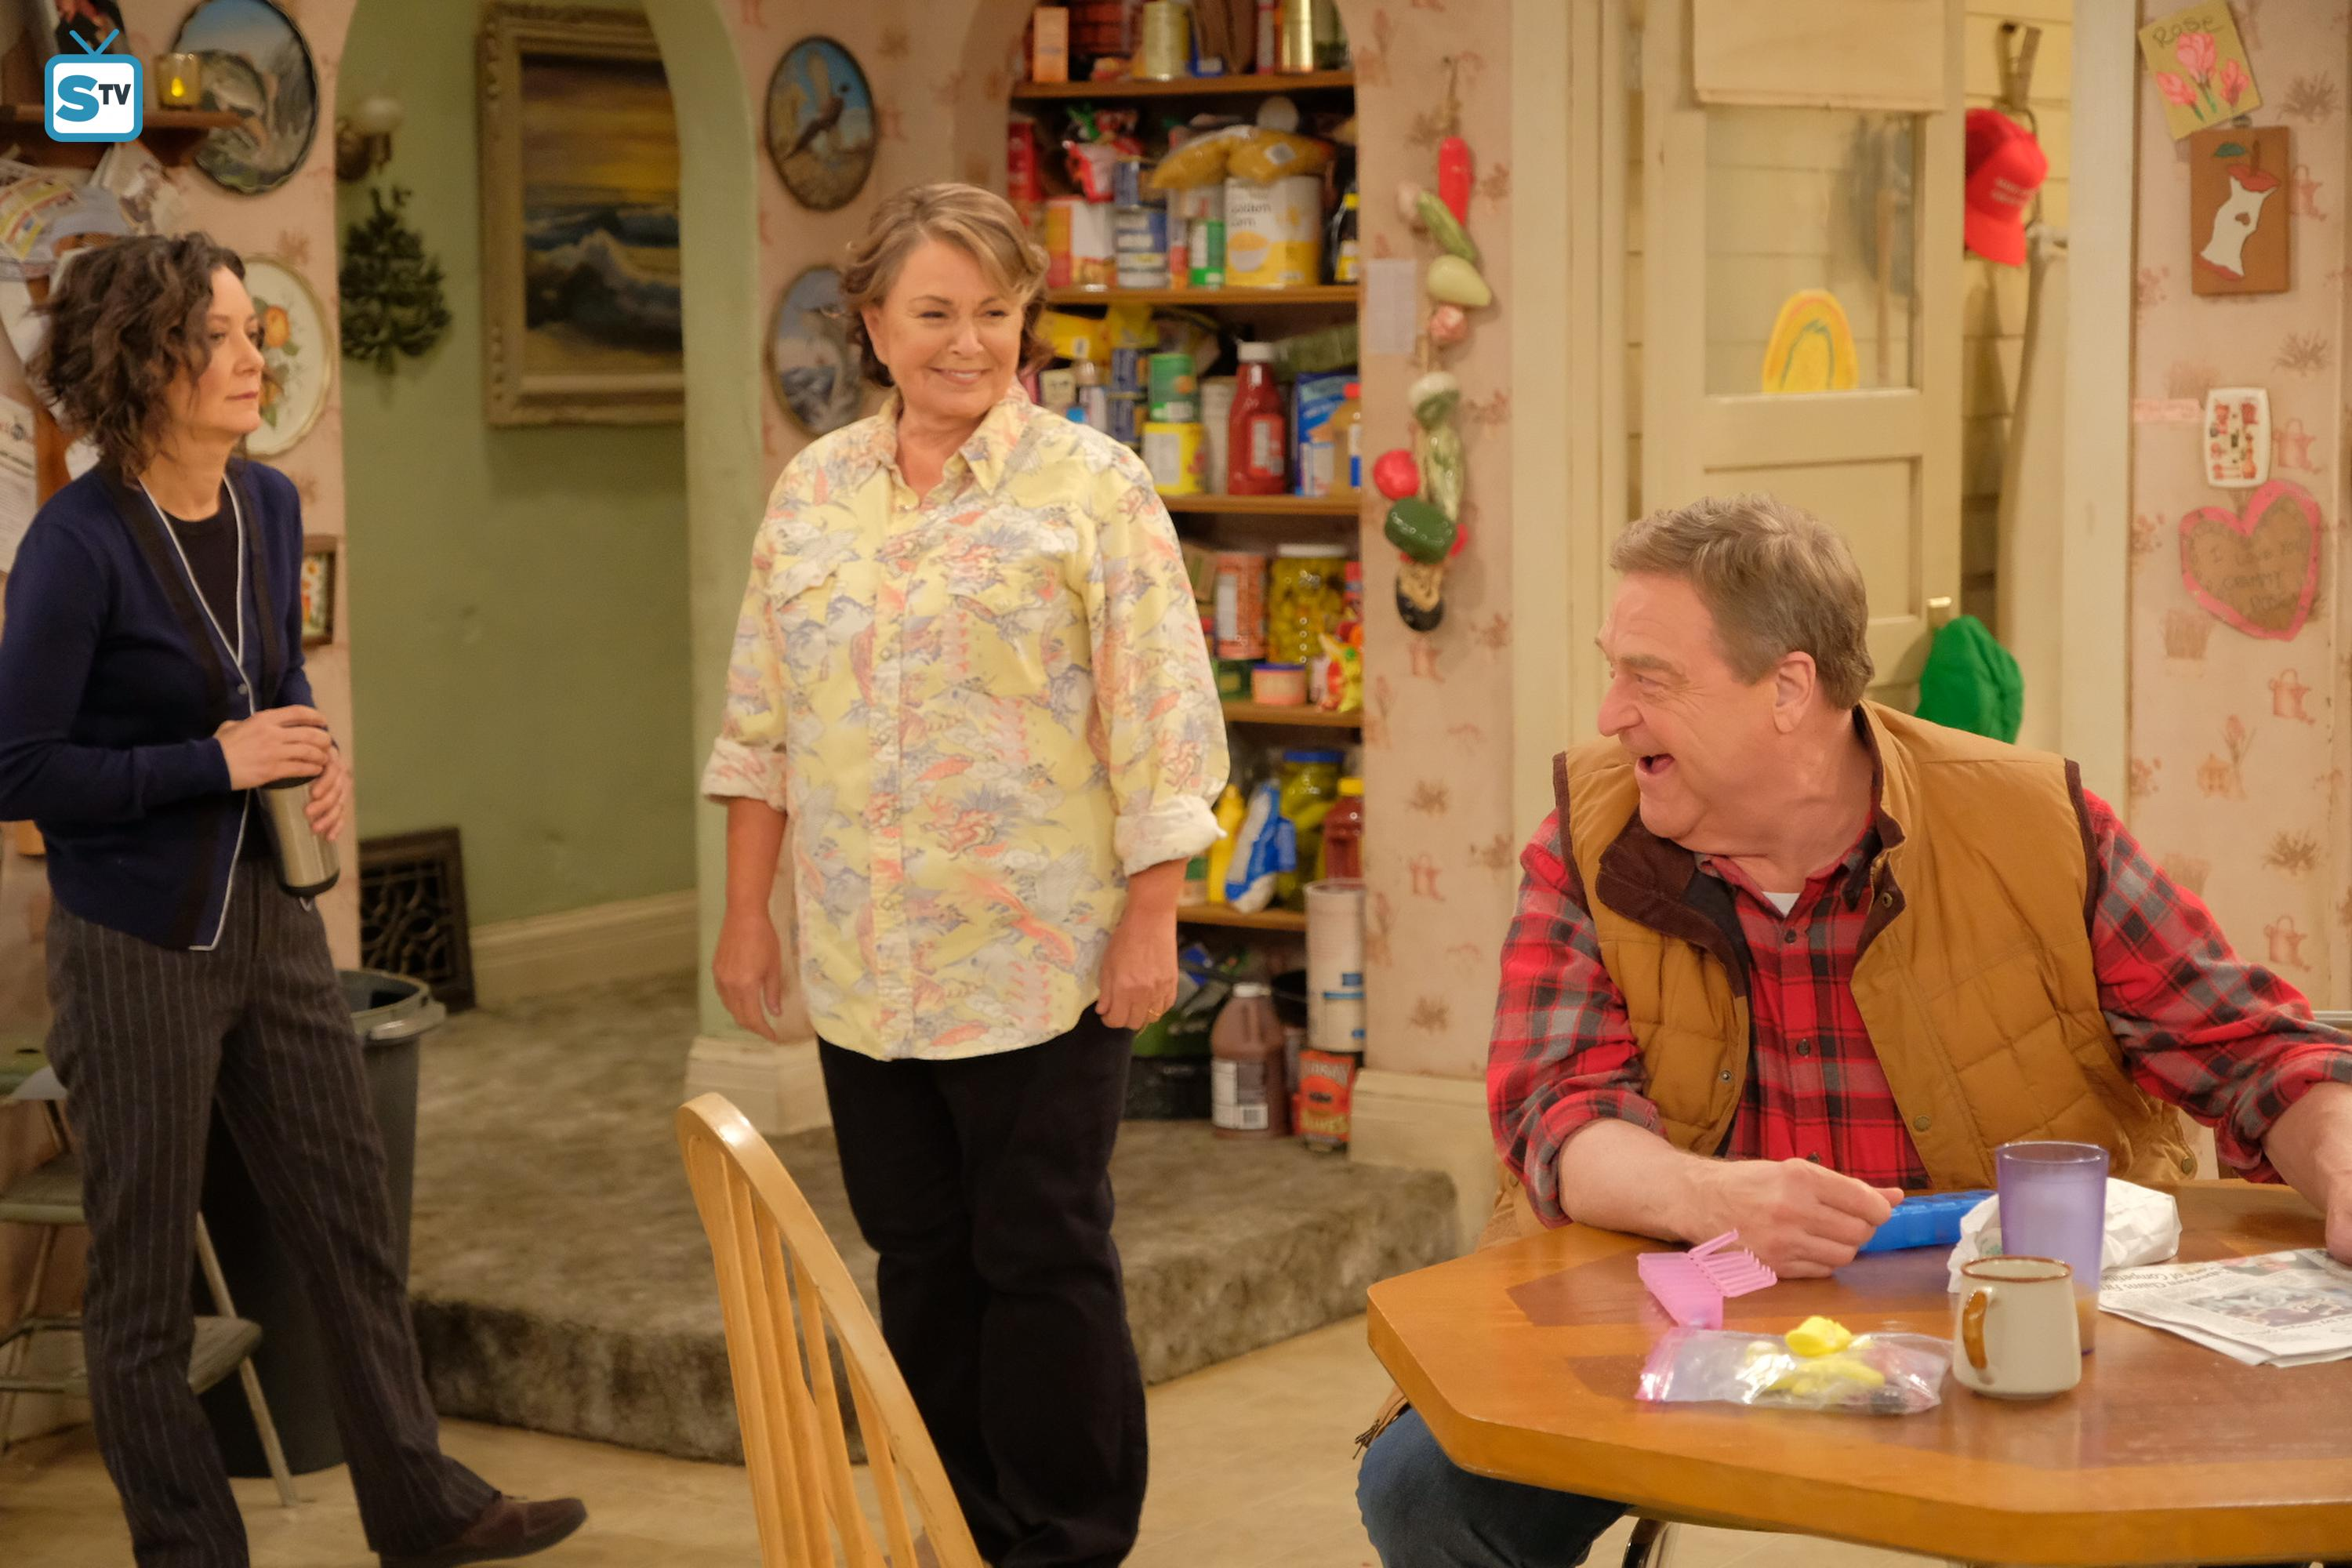 10x01 - Twenty Years to Life - Darlene, Roseanne and Dan